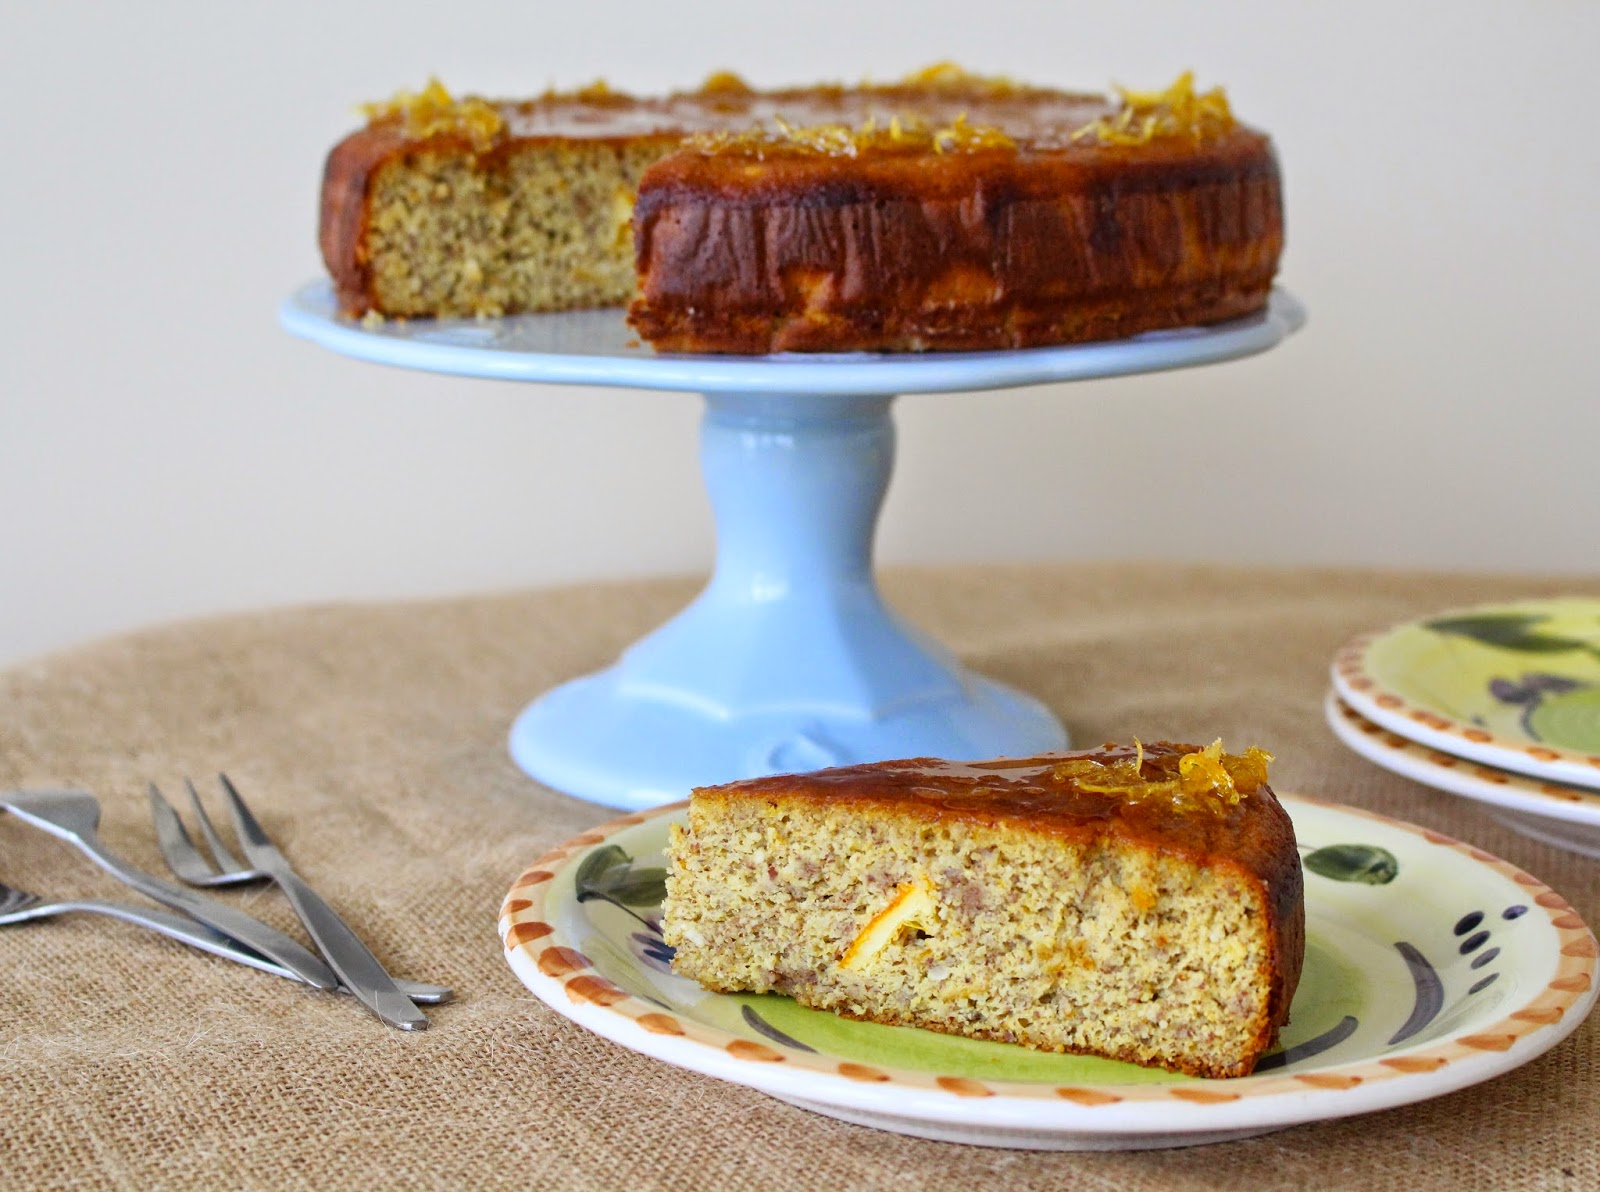 ... orange gives this cake a wonderful fresh flavor and keeps the cake